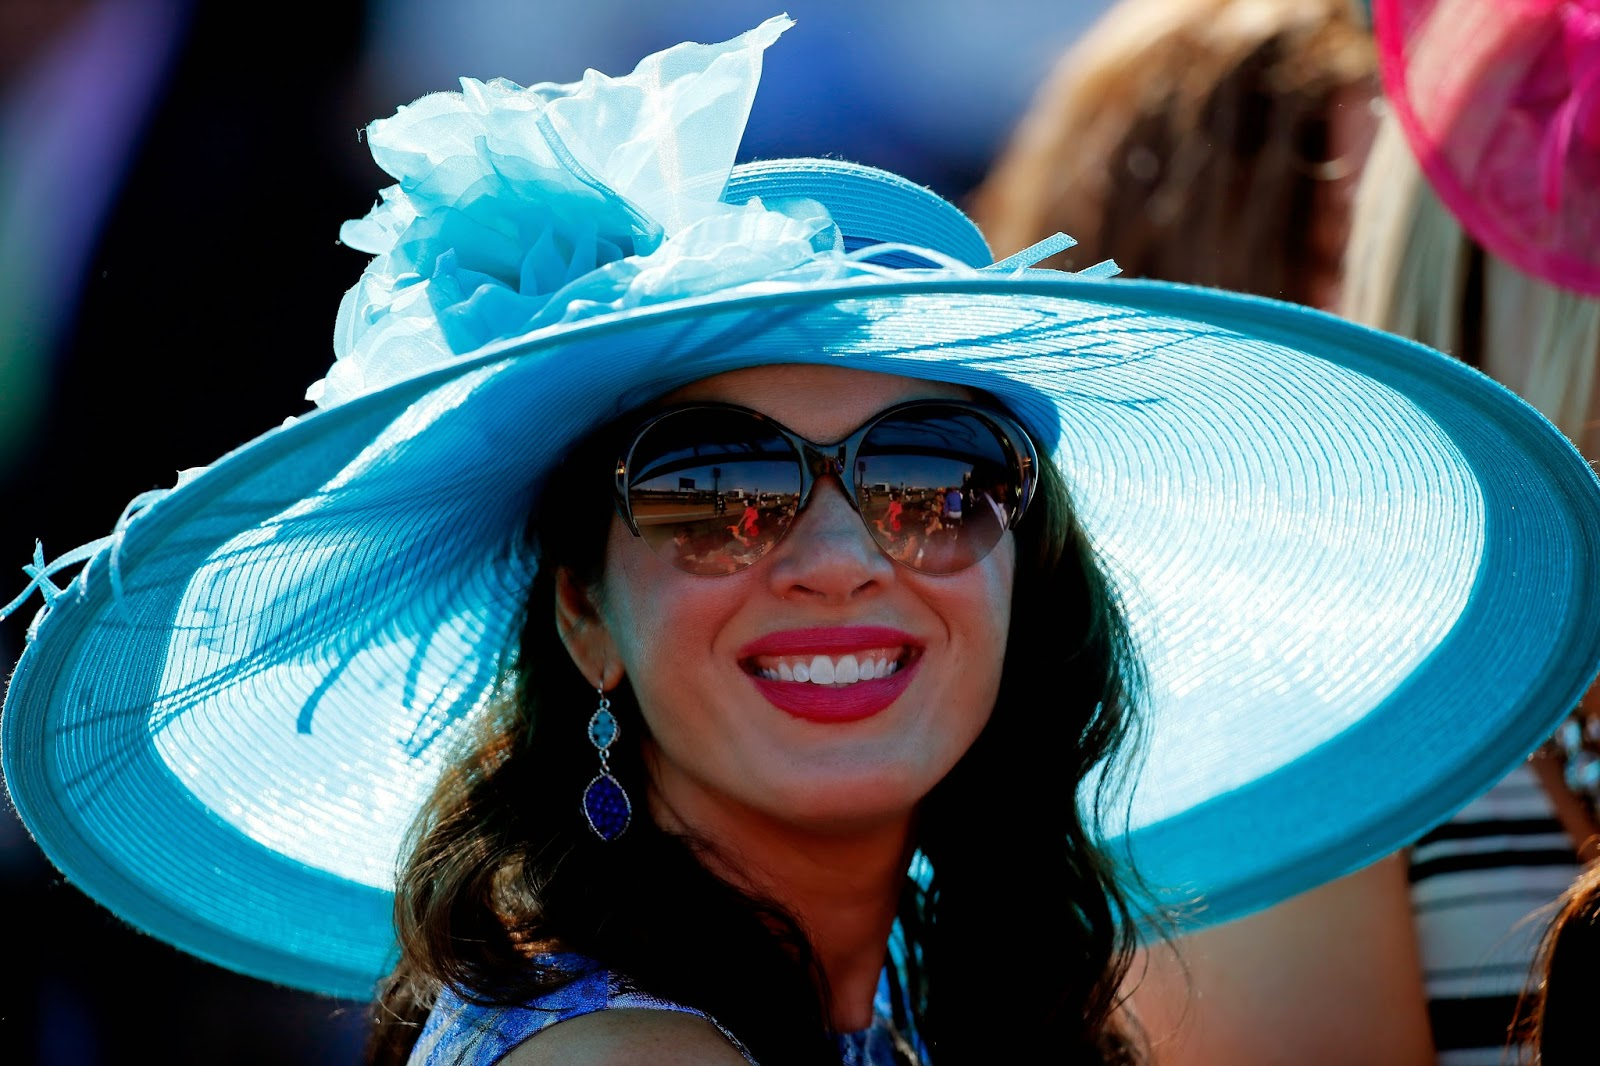 Churchill Downs, Derby, Destin Kincer, Entertainment, Festive Hats, Hats, Horse Race, Kentucky, Kentucky Derby, Kentucky Derby Hats, Louisville, Miss America 2014, Miss Kentucky US 2014, Nina Davuluri, Sports,